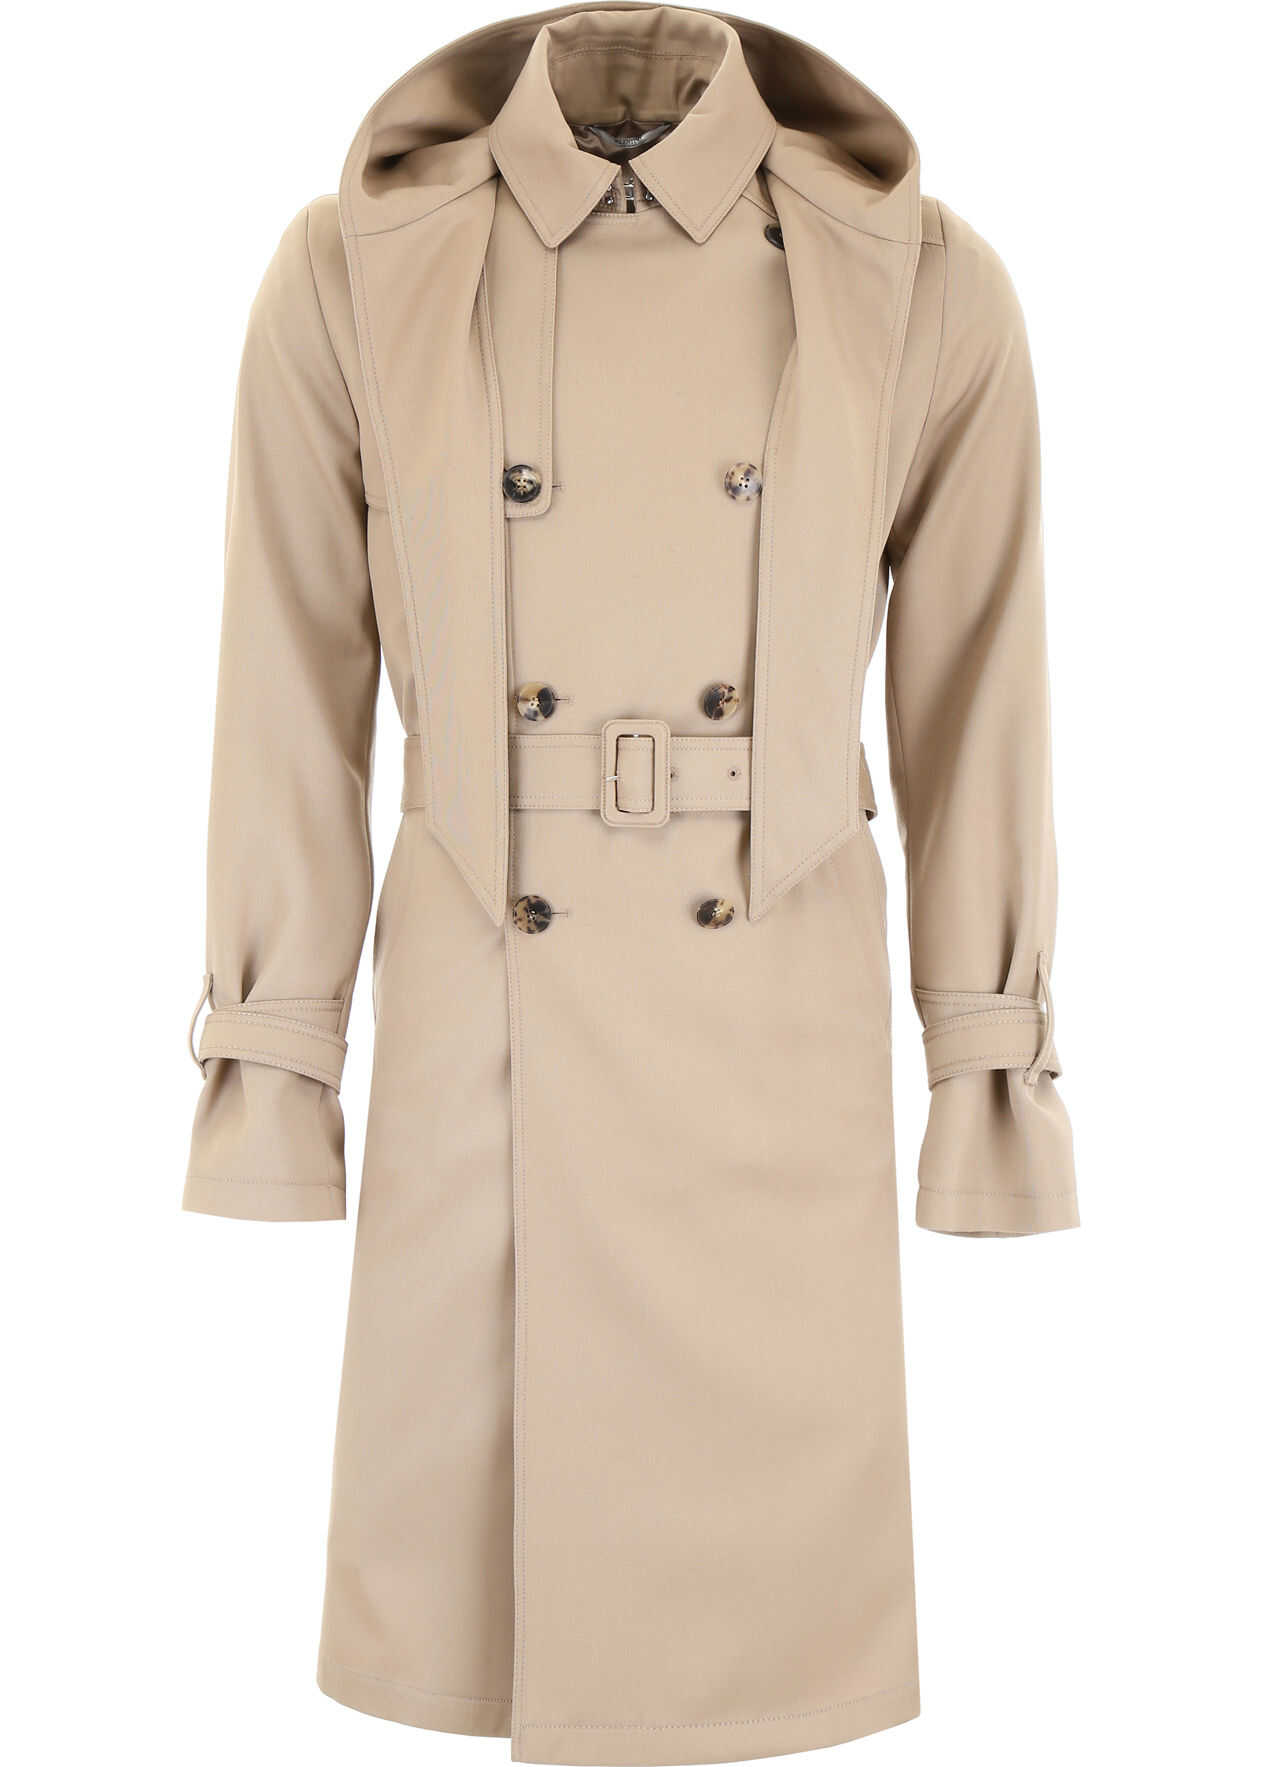 Valentino Garavani Wool Coat ICED COFFE